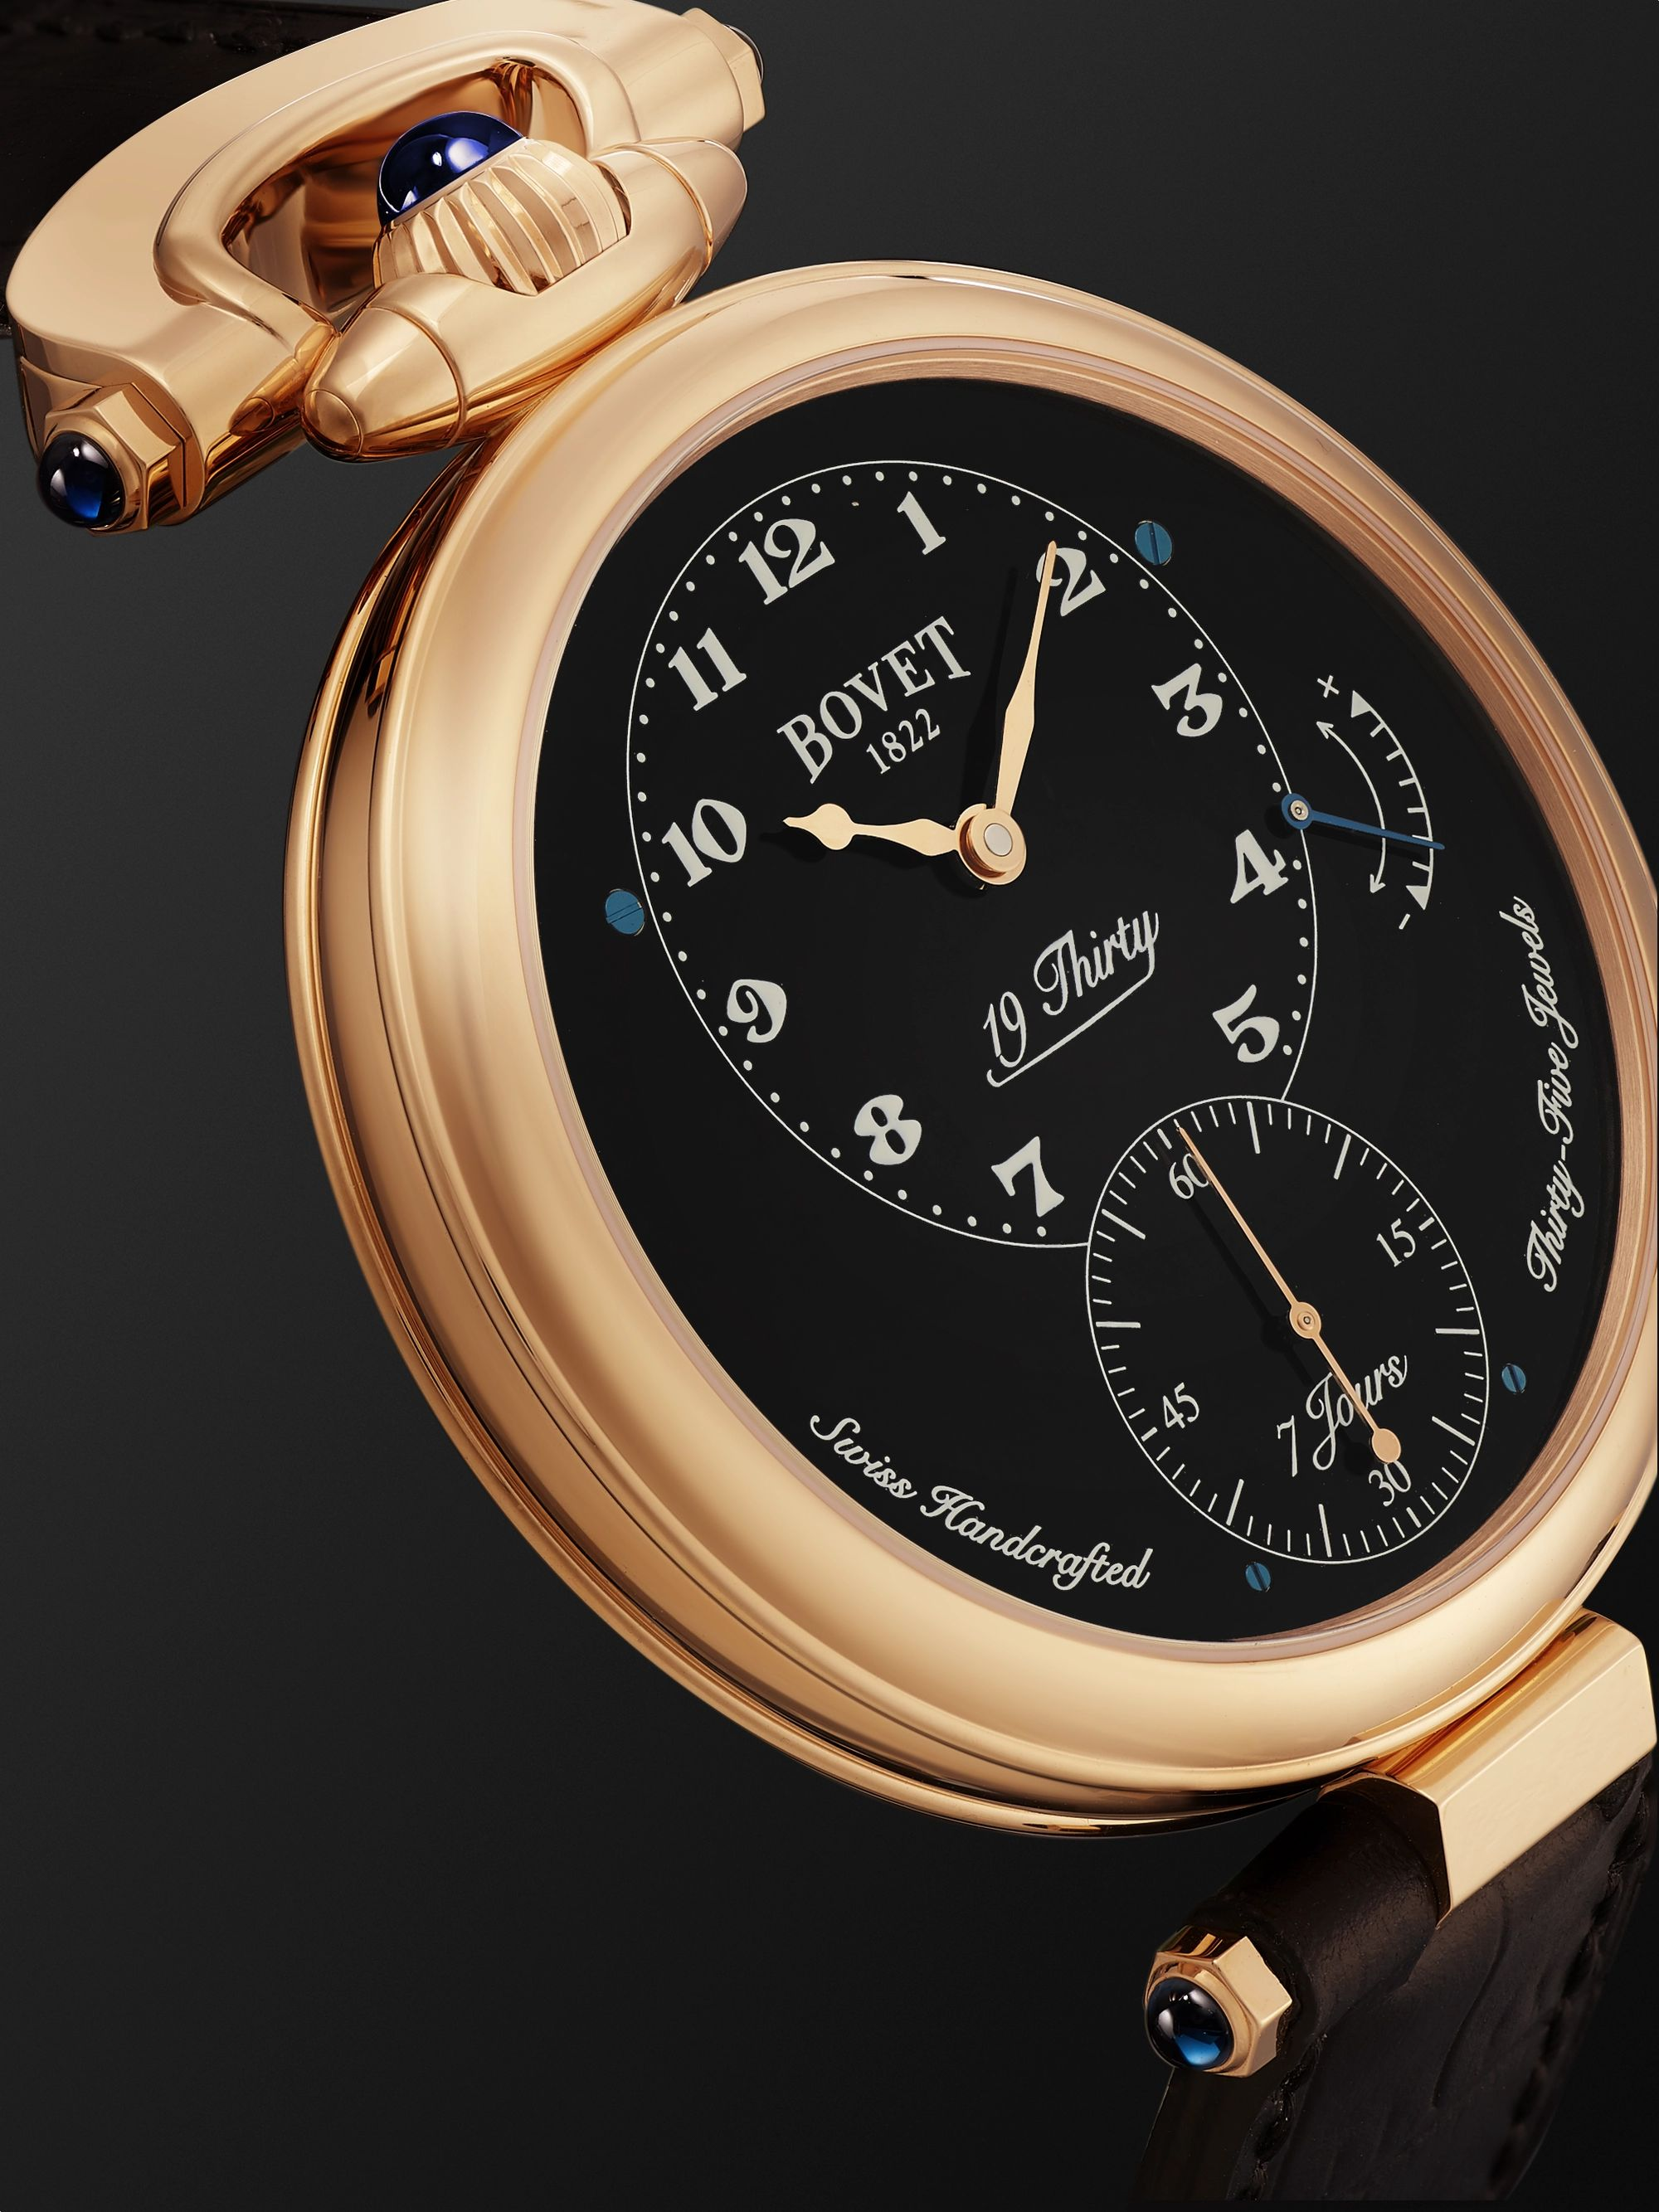 BOVET 19Thirty Fleurier Hand-Wound 42mm 18-Karat Rose Gold and Leather Watch, Ref. No. NTR0029